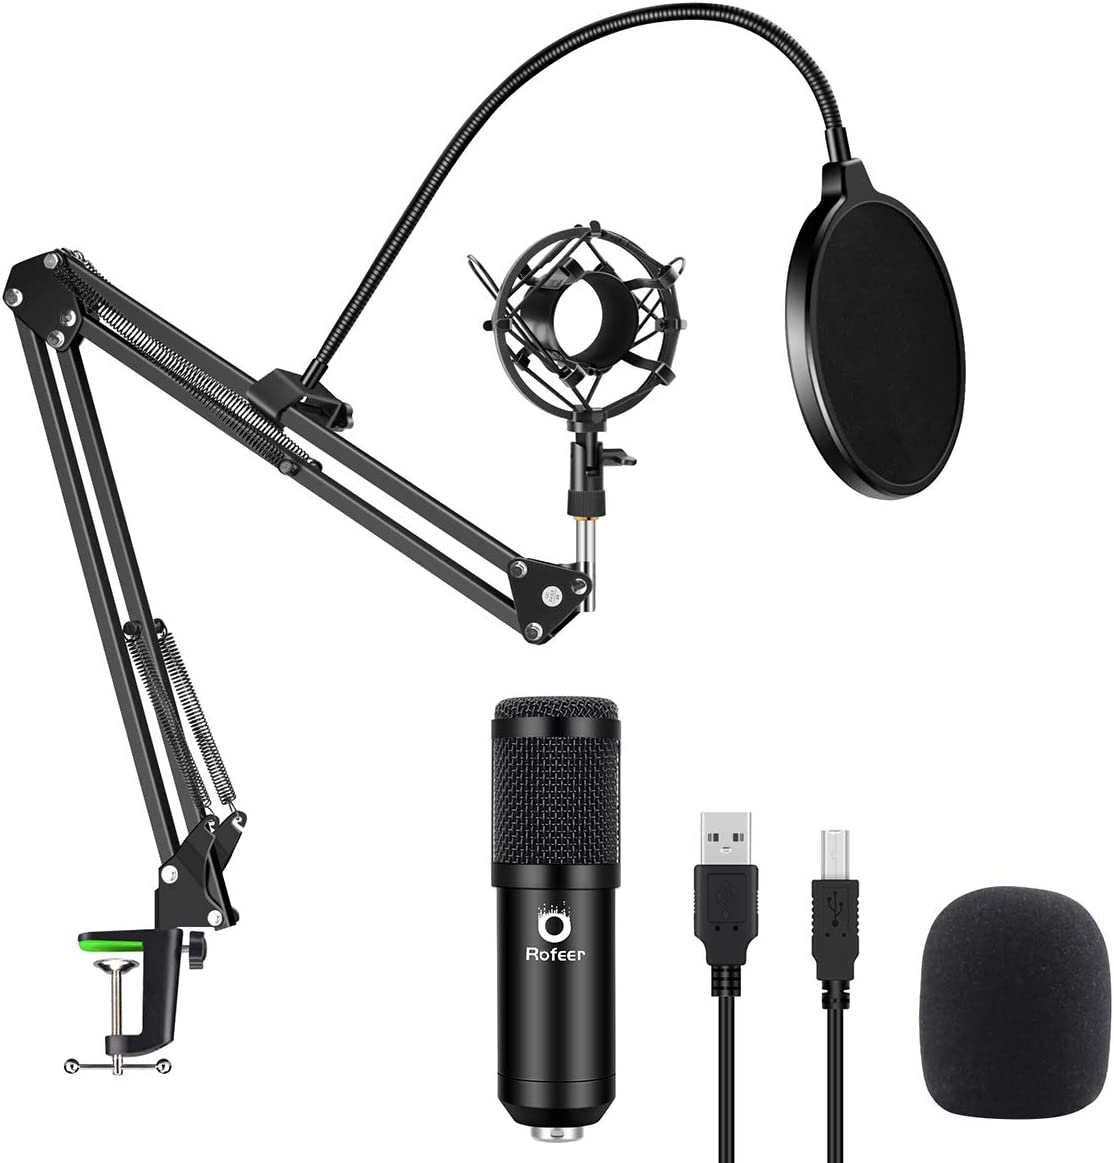 USB Podcast Condenser Microphone Kit 192kHZ/24bit Plug & Play Computer PC Microphone Studio Streaming Cardioid Mic with Professional Sound Chipset for Recording Broadcasting YouTube Gaming